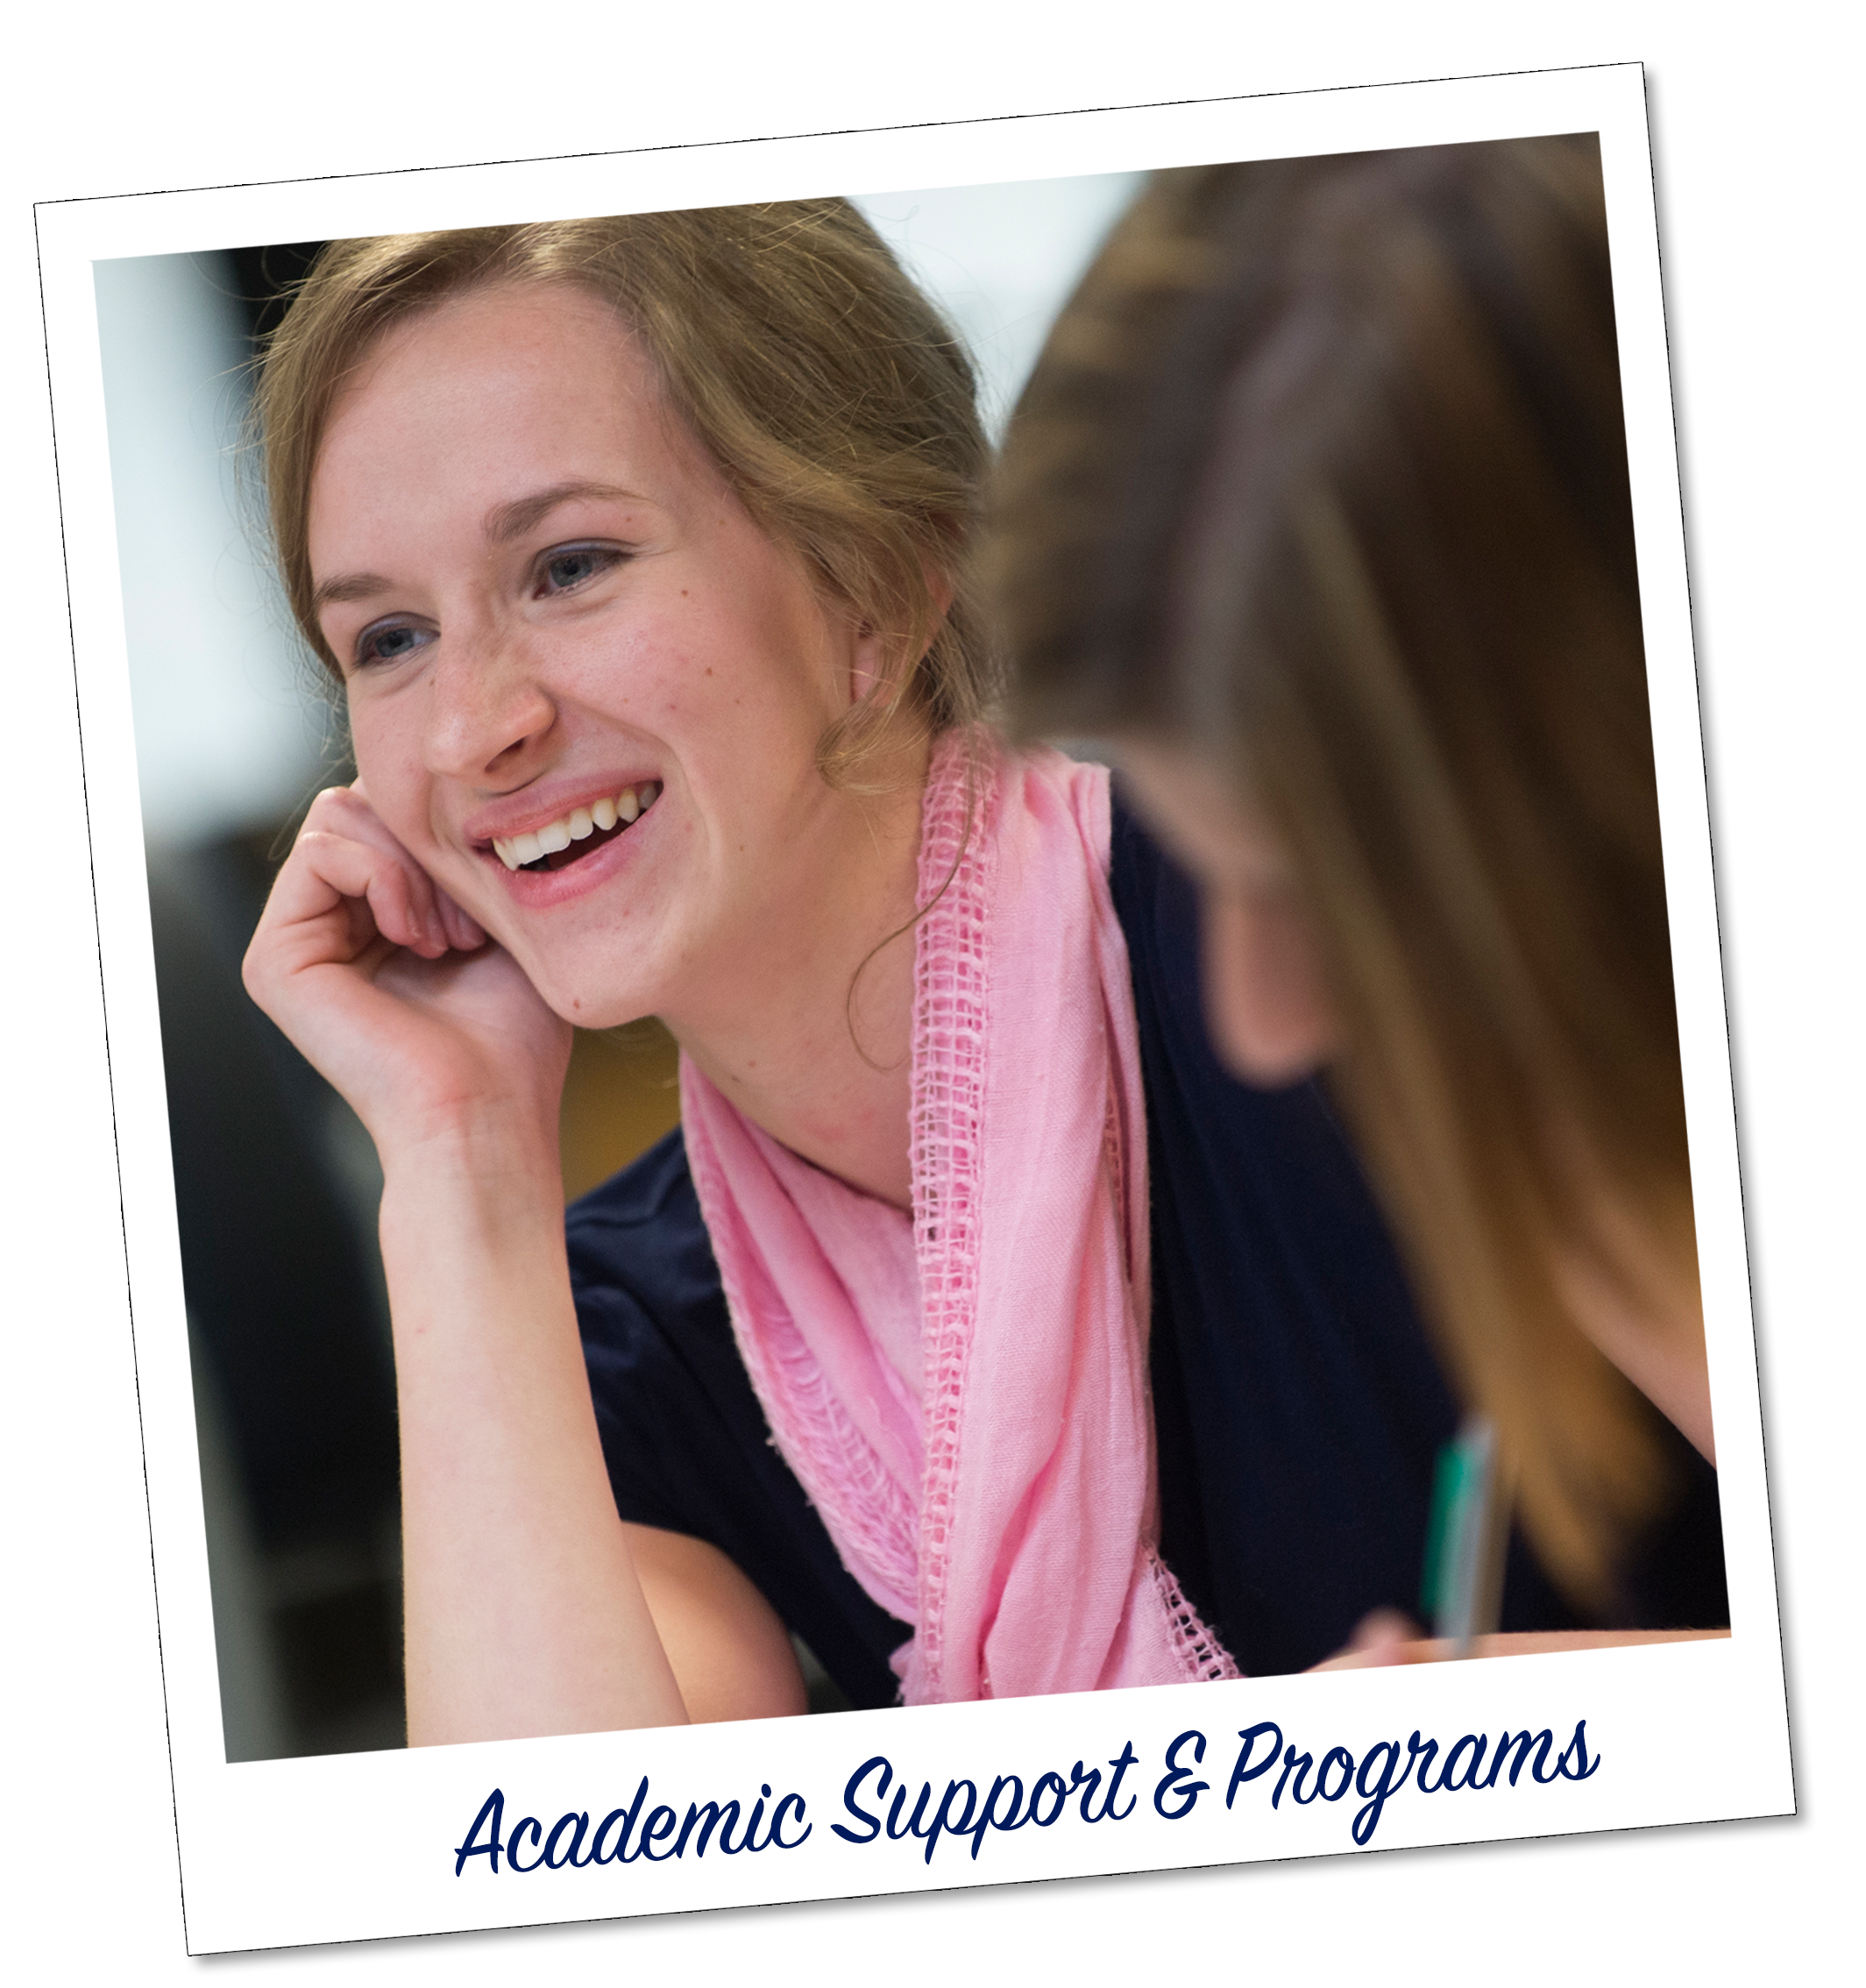 Academic Support and Programs